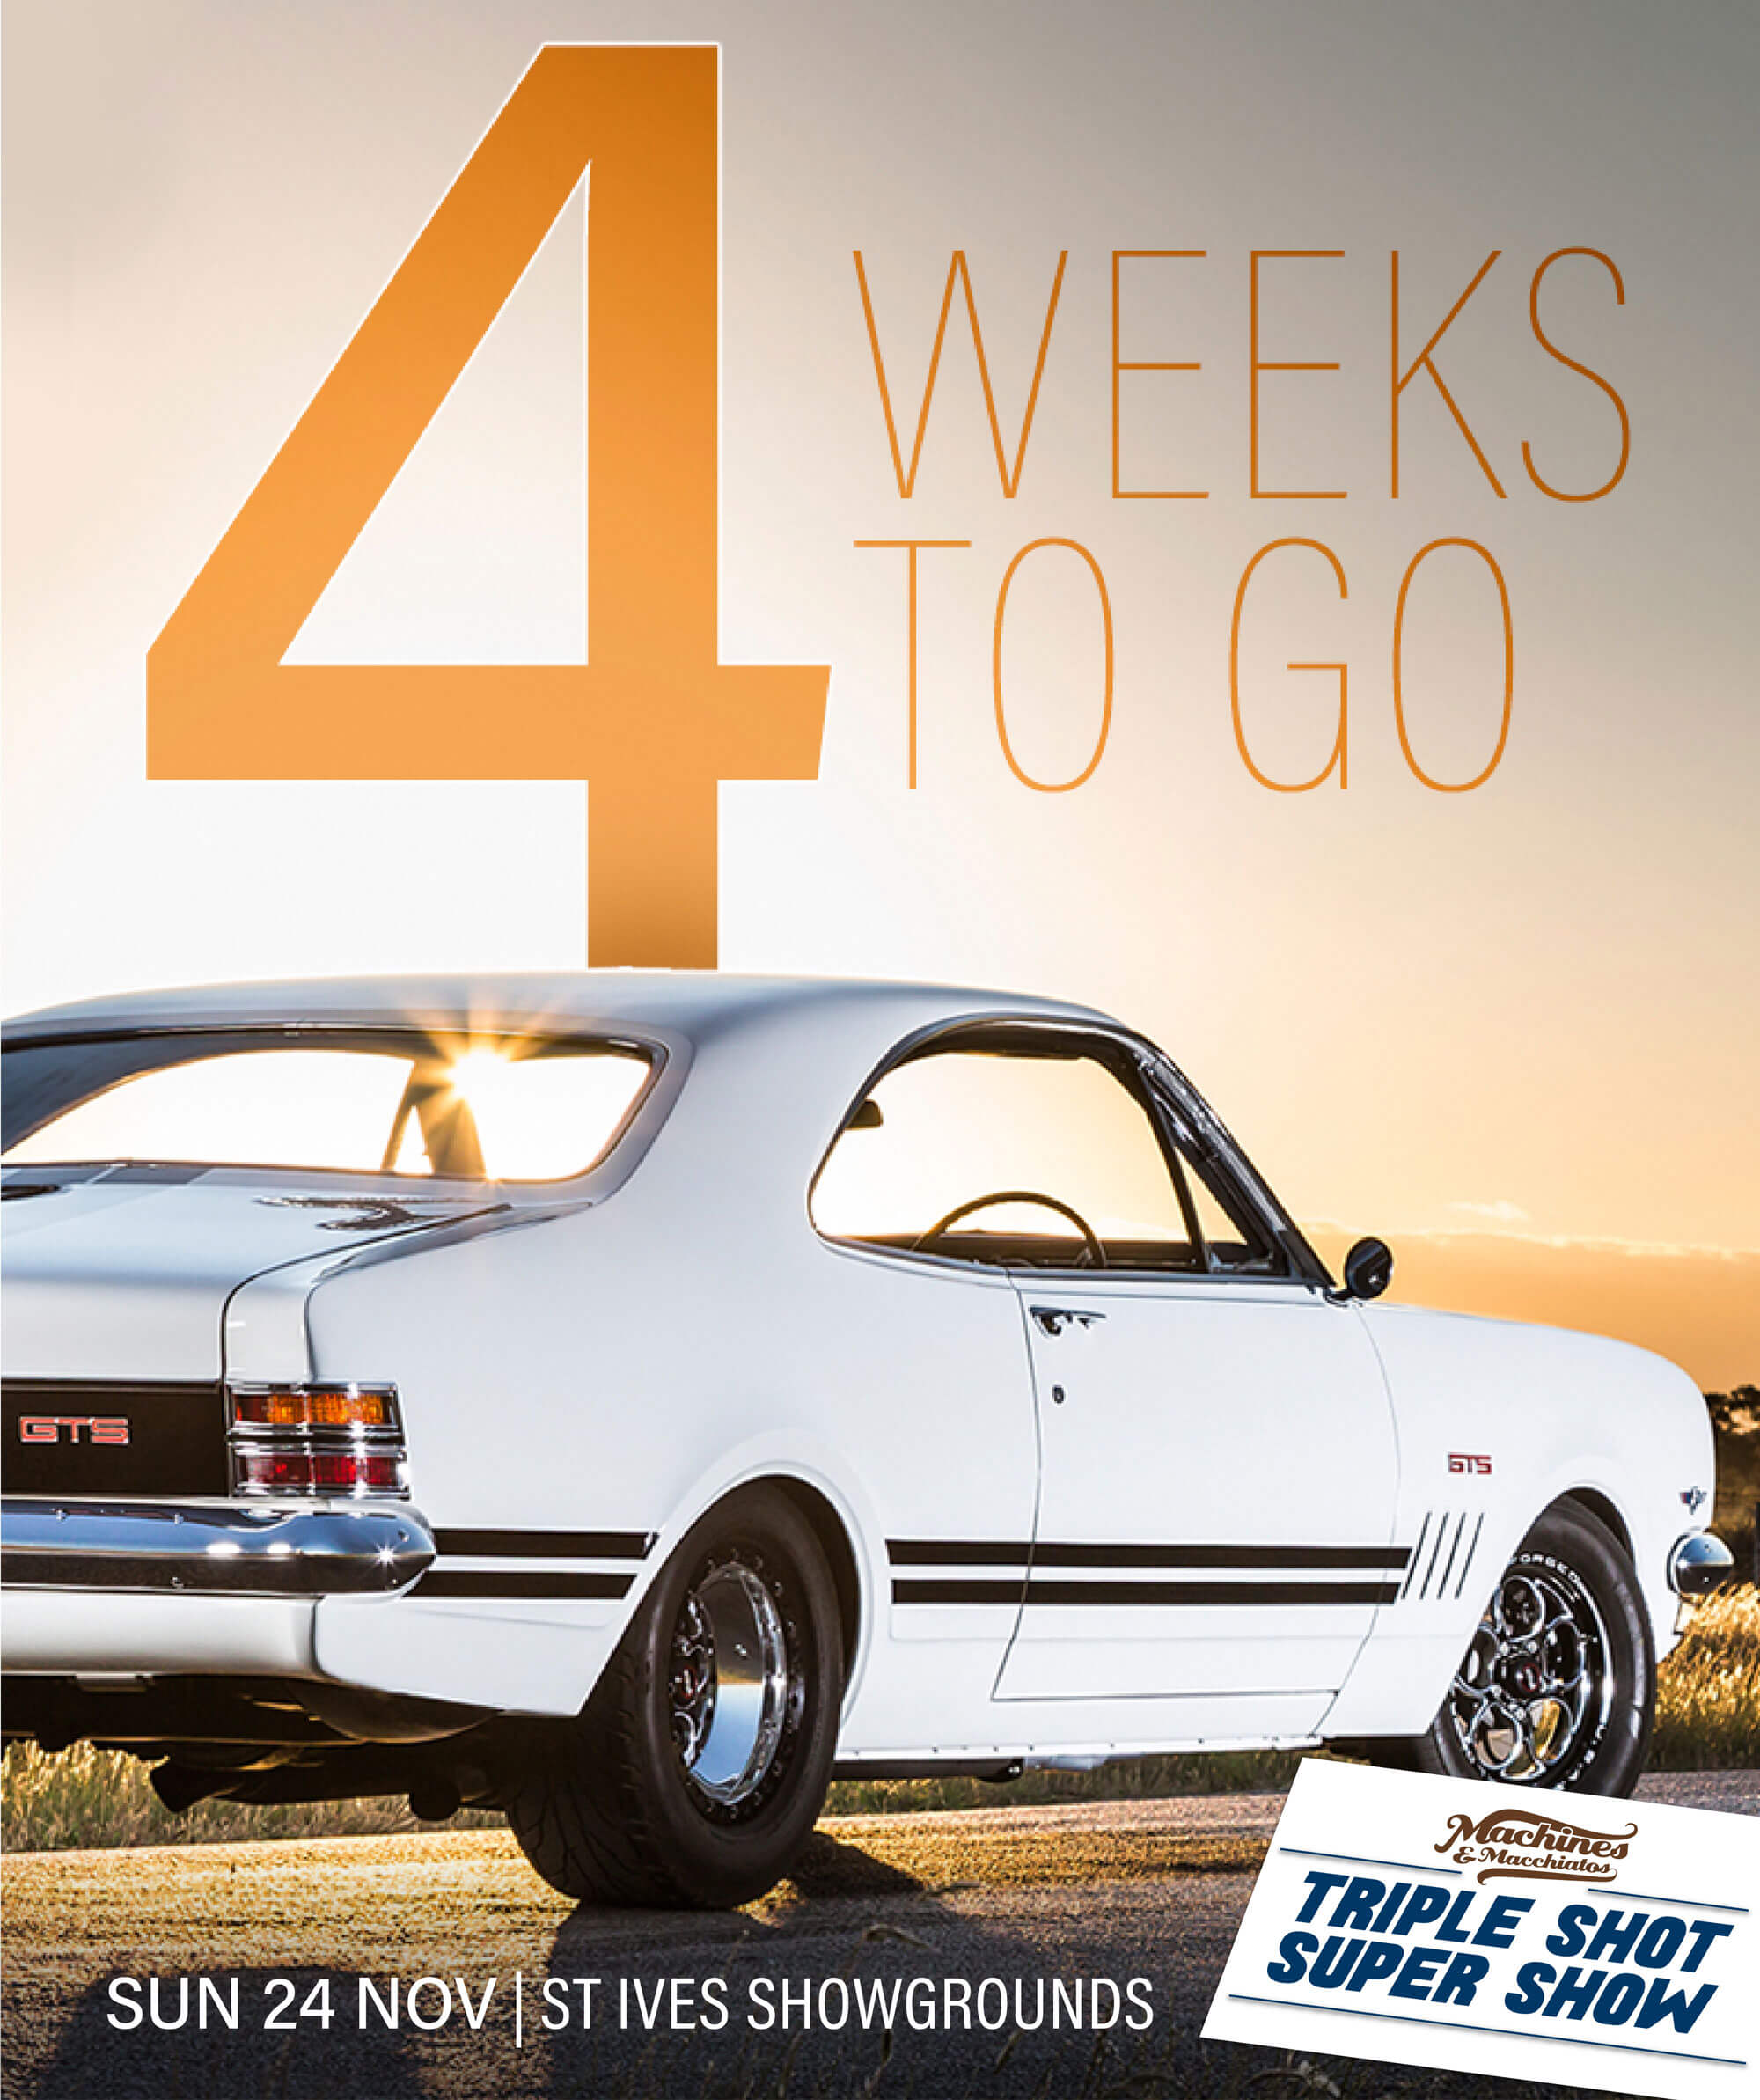 4 Weeks To Go - Triple Shot Super Show